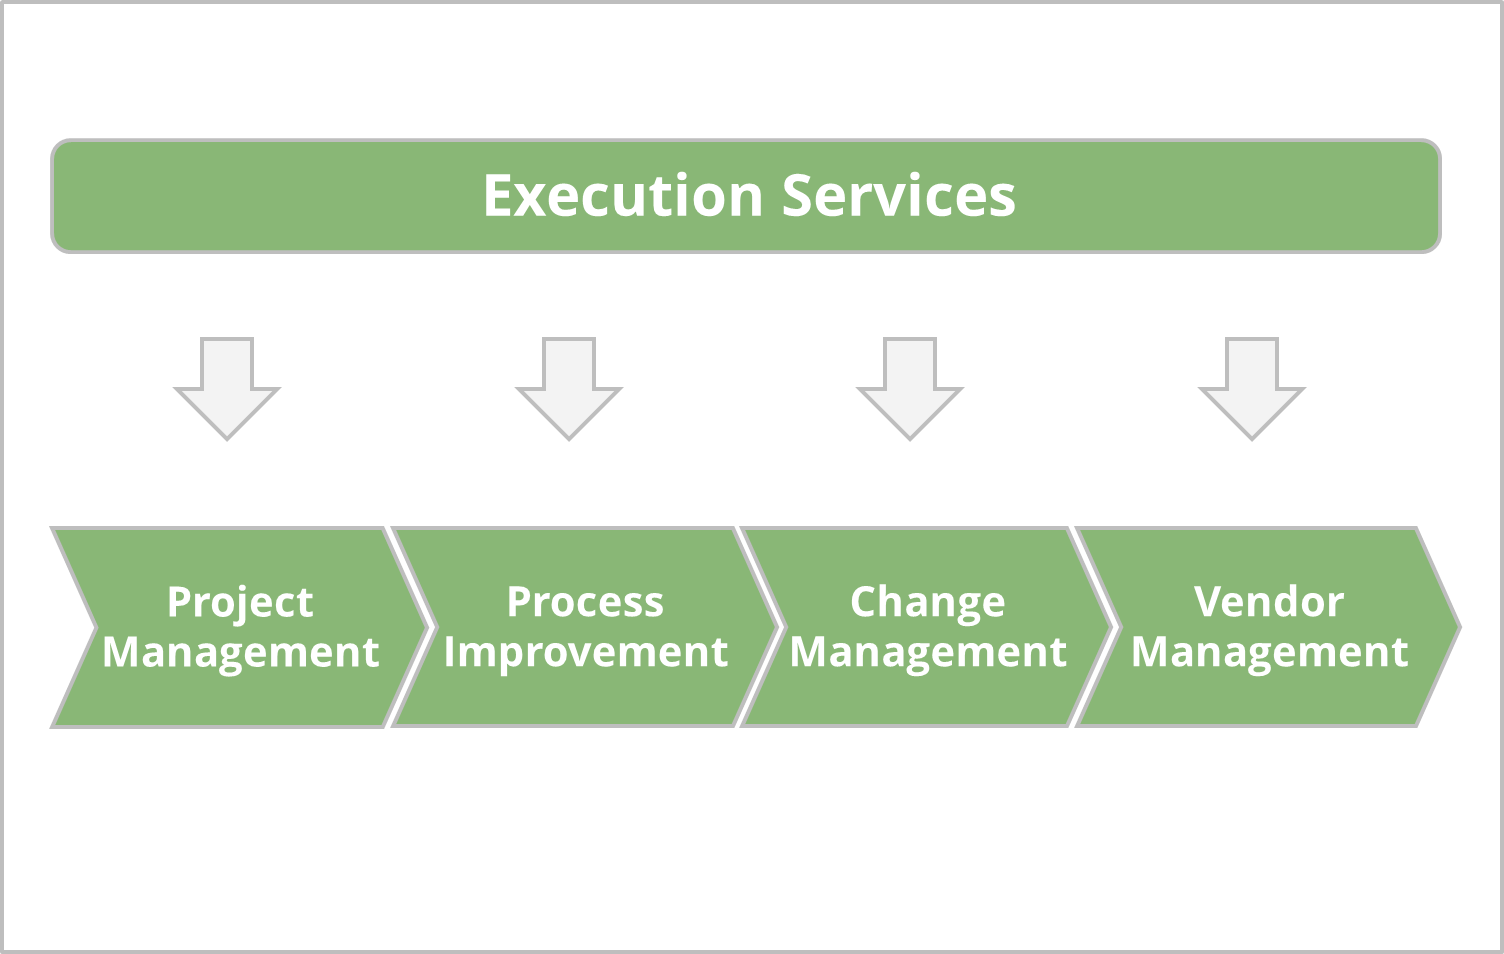 Project Management, Change Management, Vendor Management